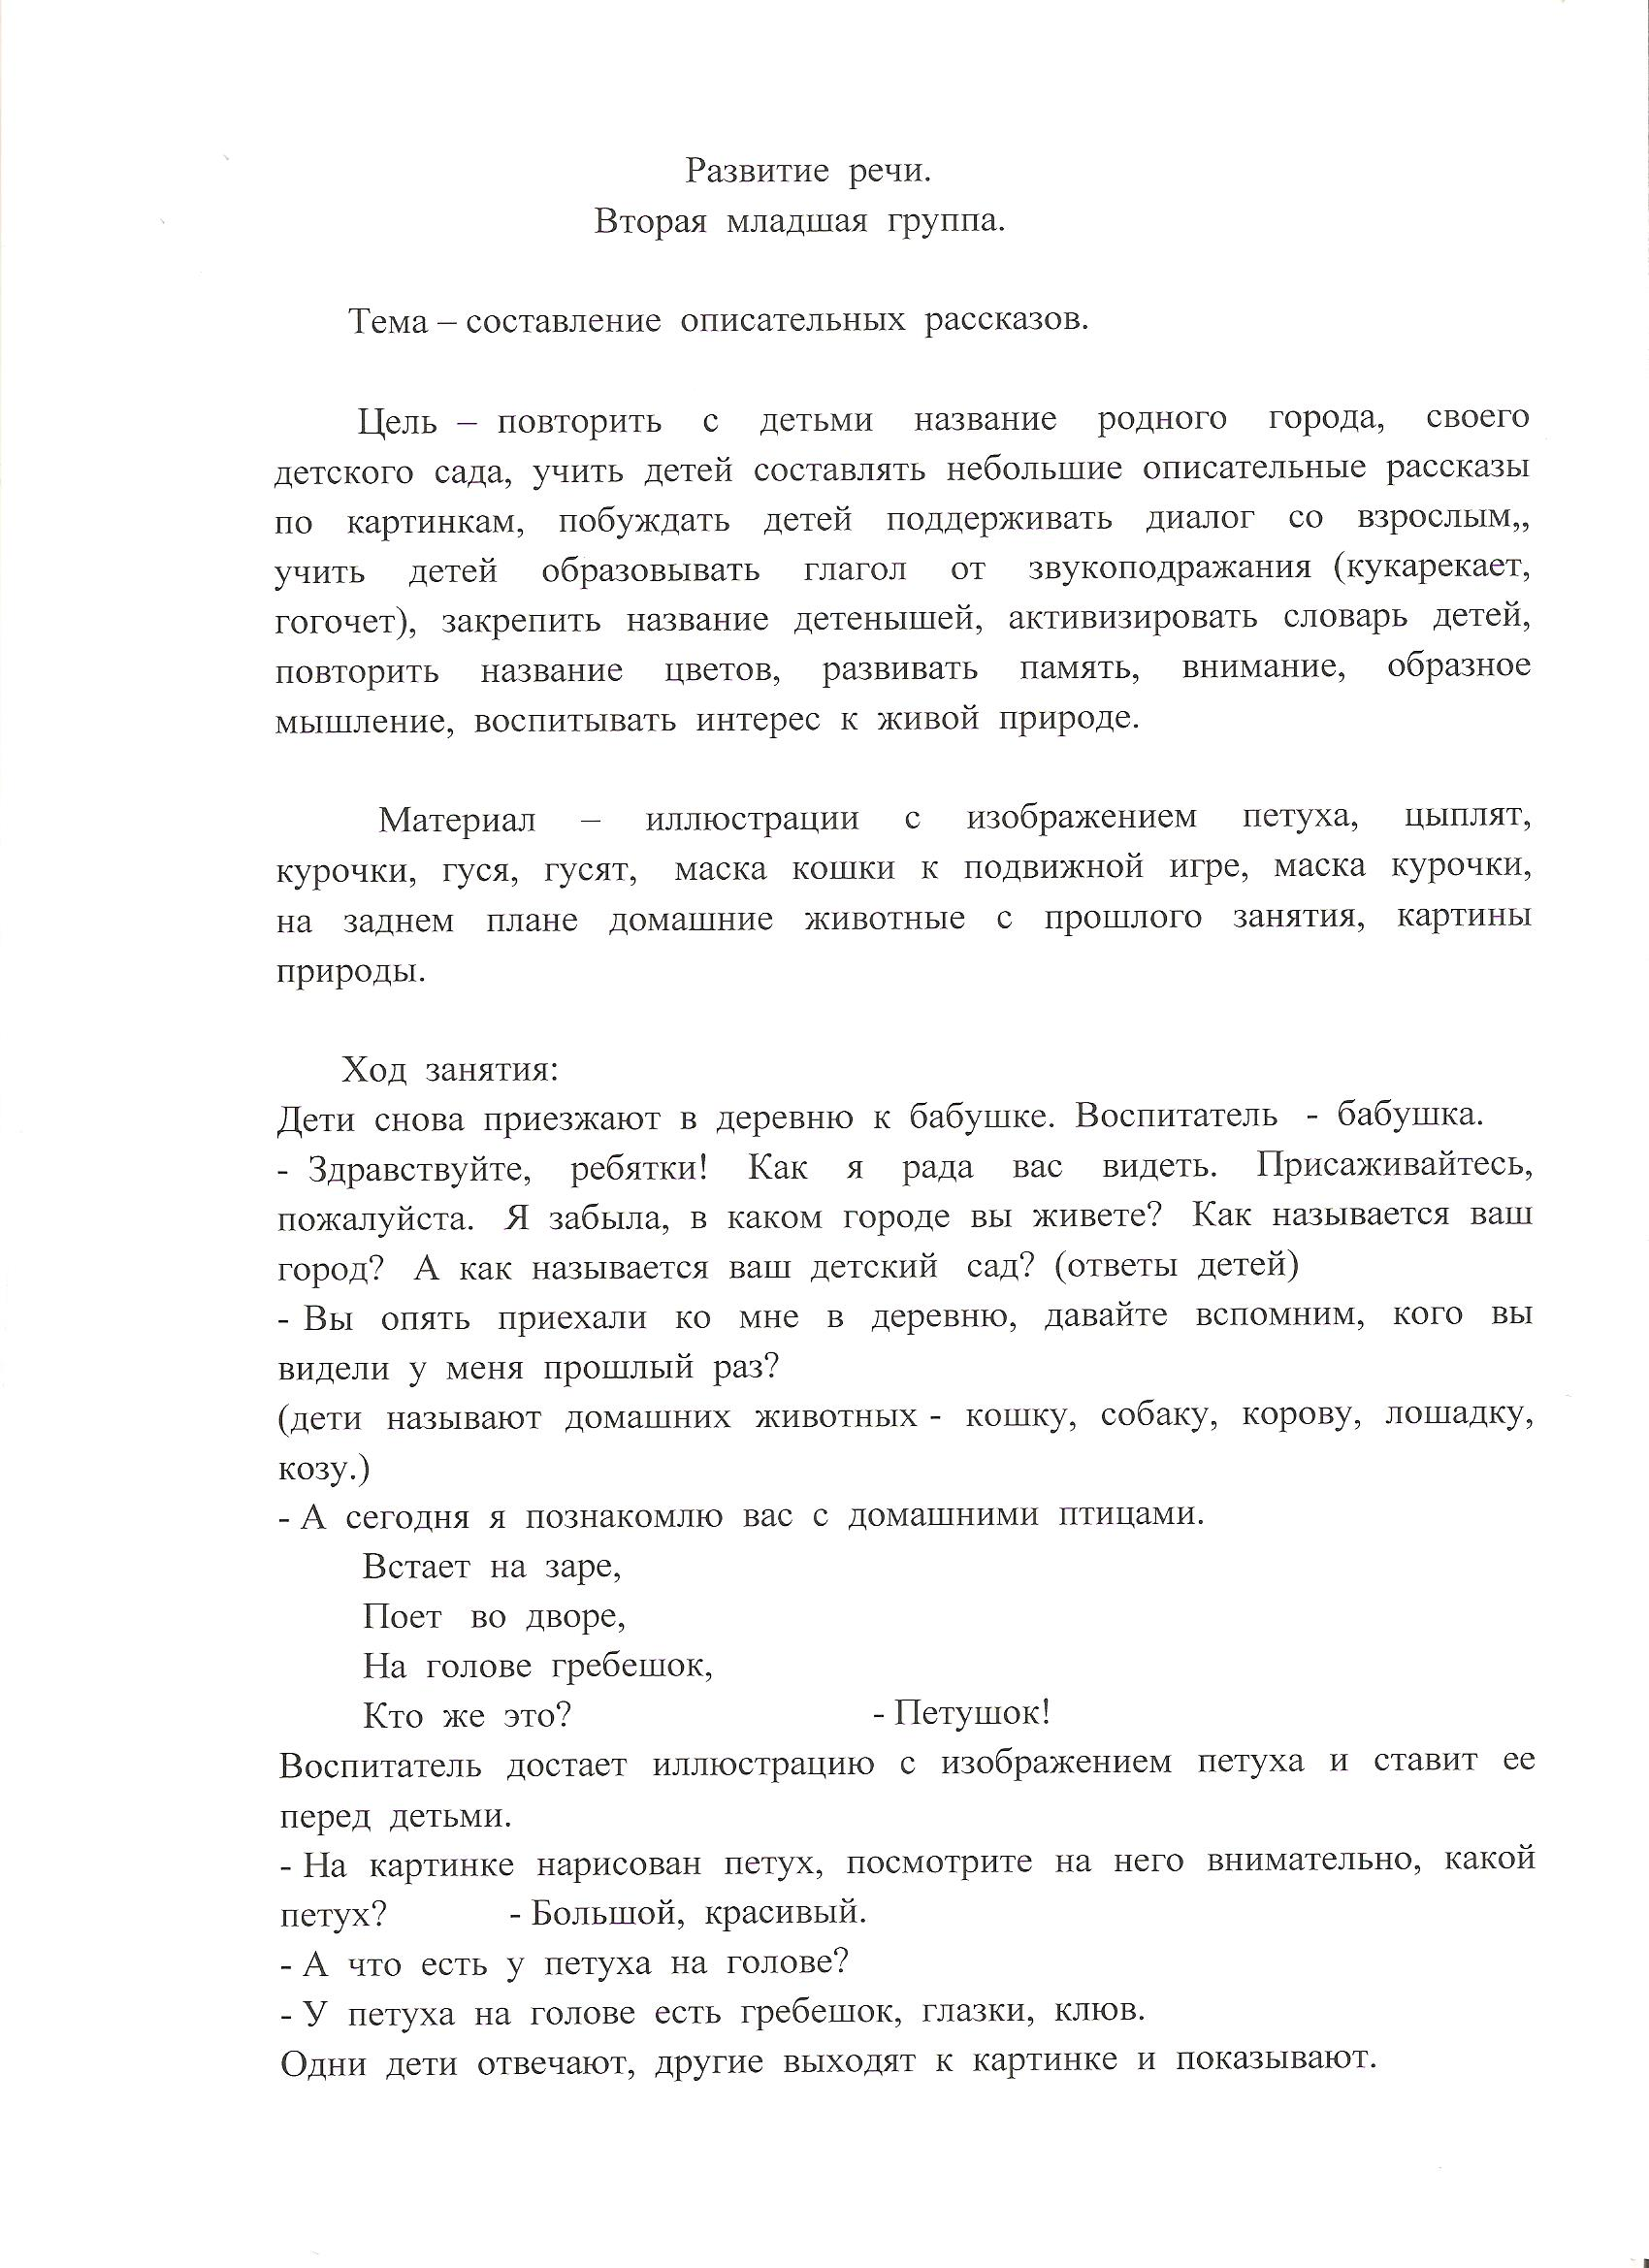 C:\Users\Оля\Pictures\2015-03-31 1\1 001.jpg